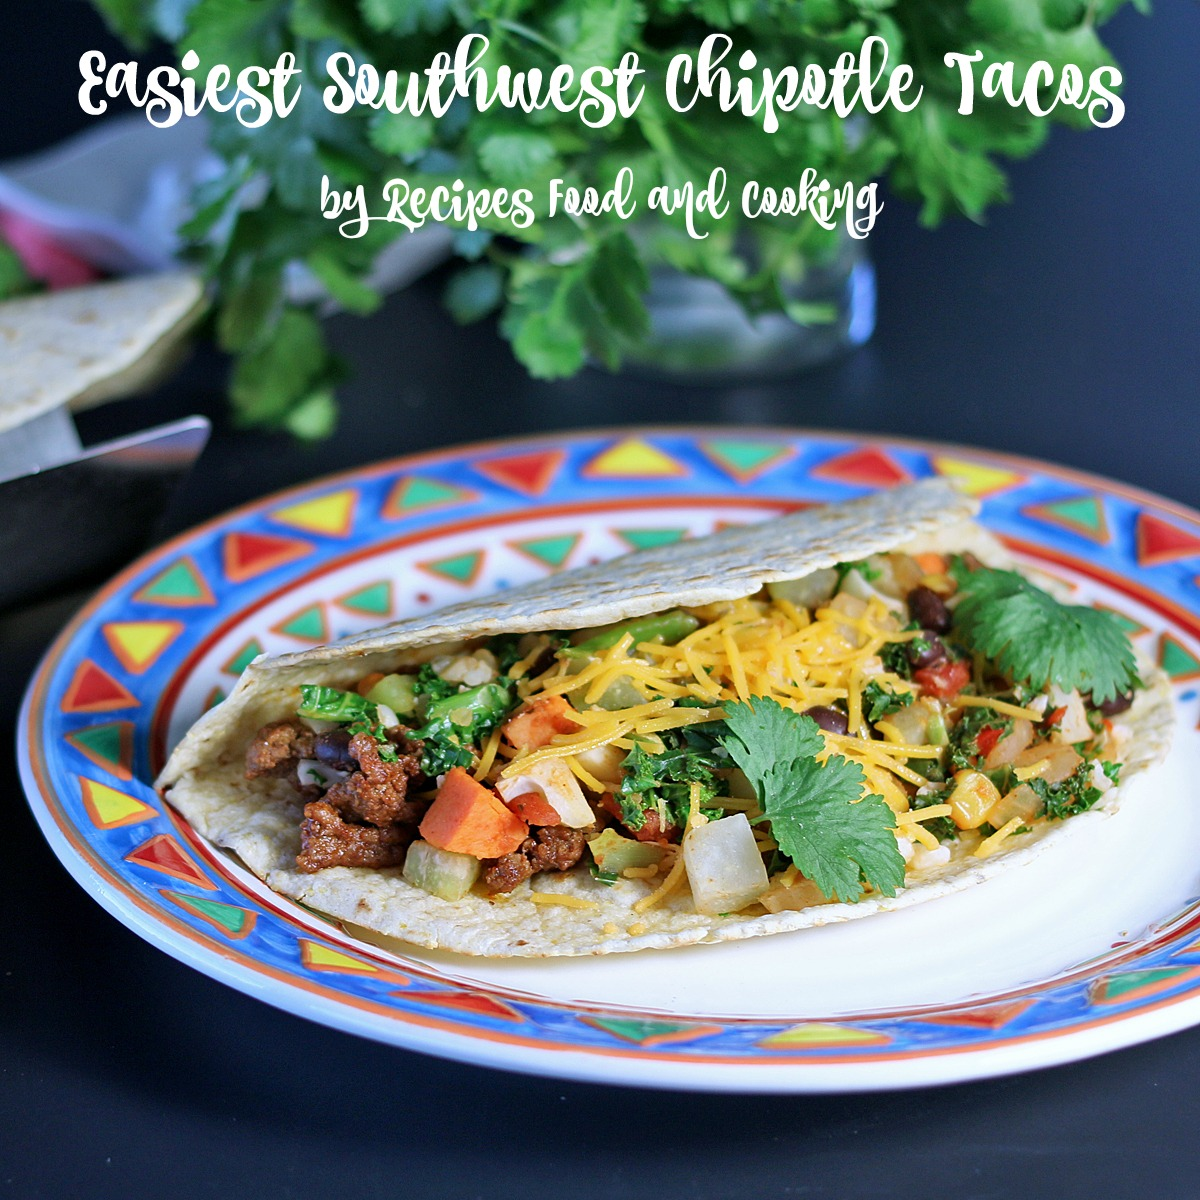 Easiest Southwest Chipotle Tacos